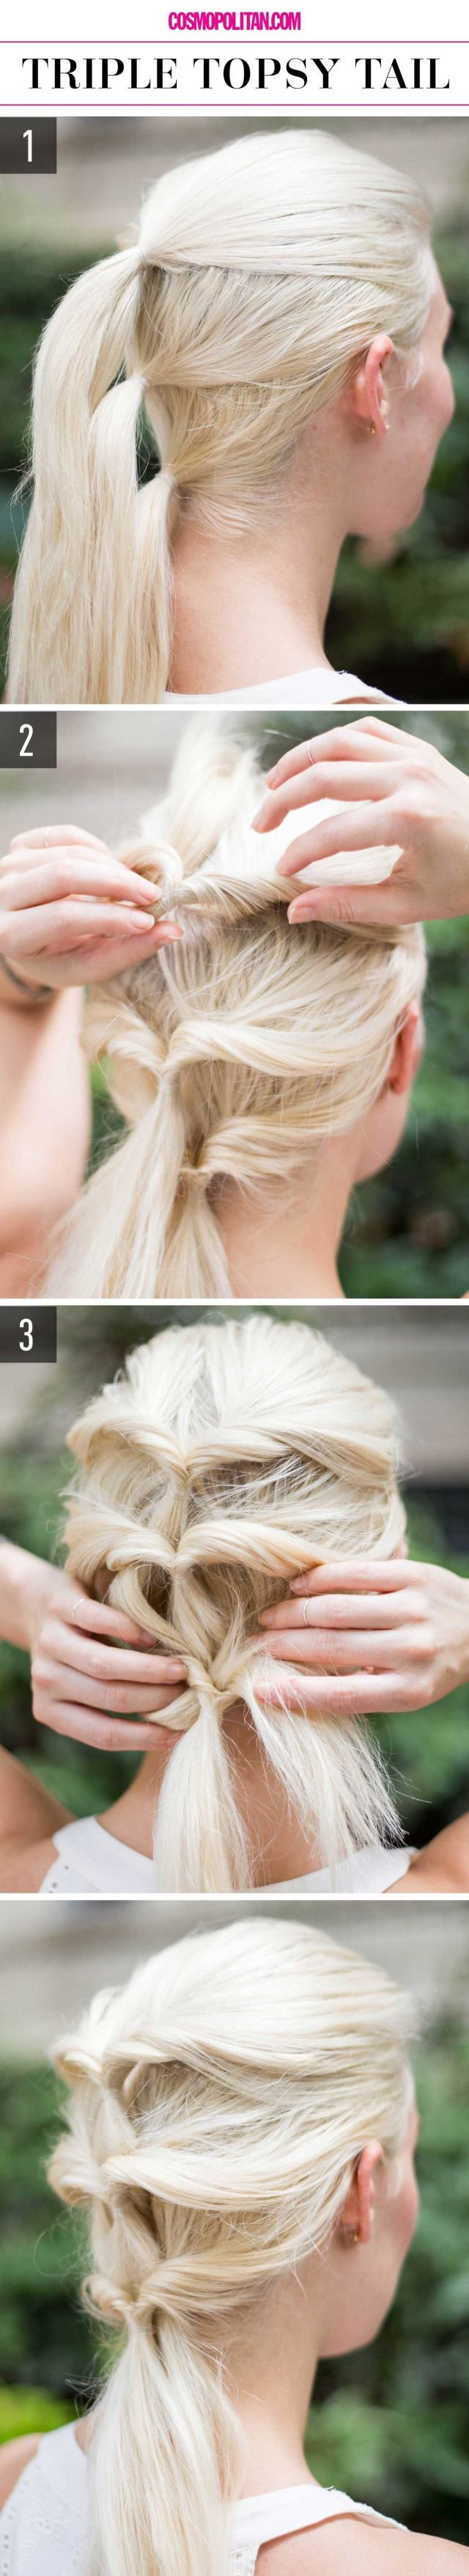 15+Super-Easy+Hairstyles+for+Lazy+Girls+Who+Can't+Even+ - Cosmopolitan.com